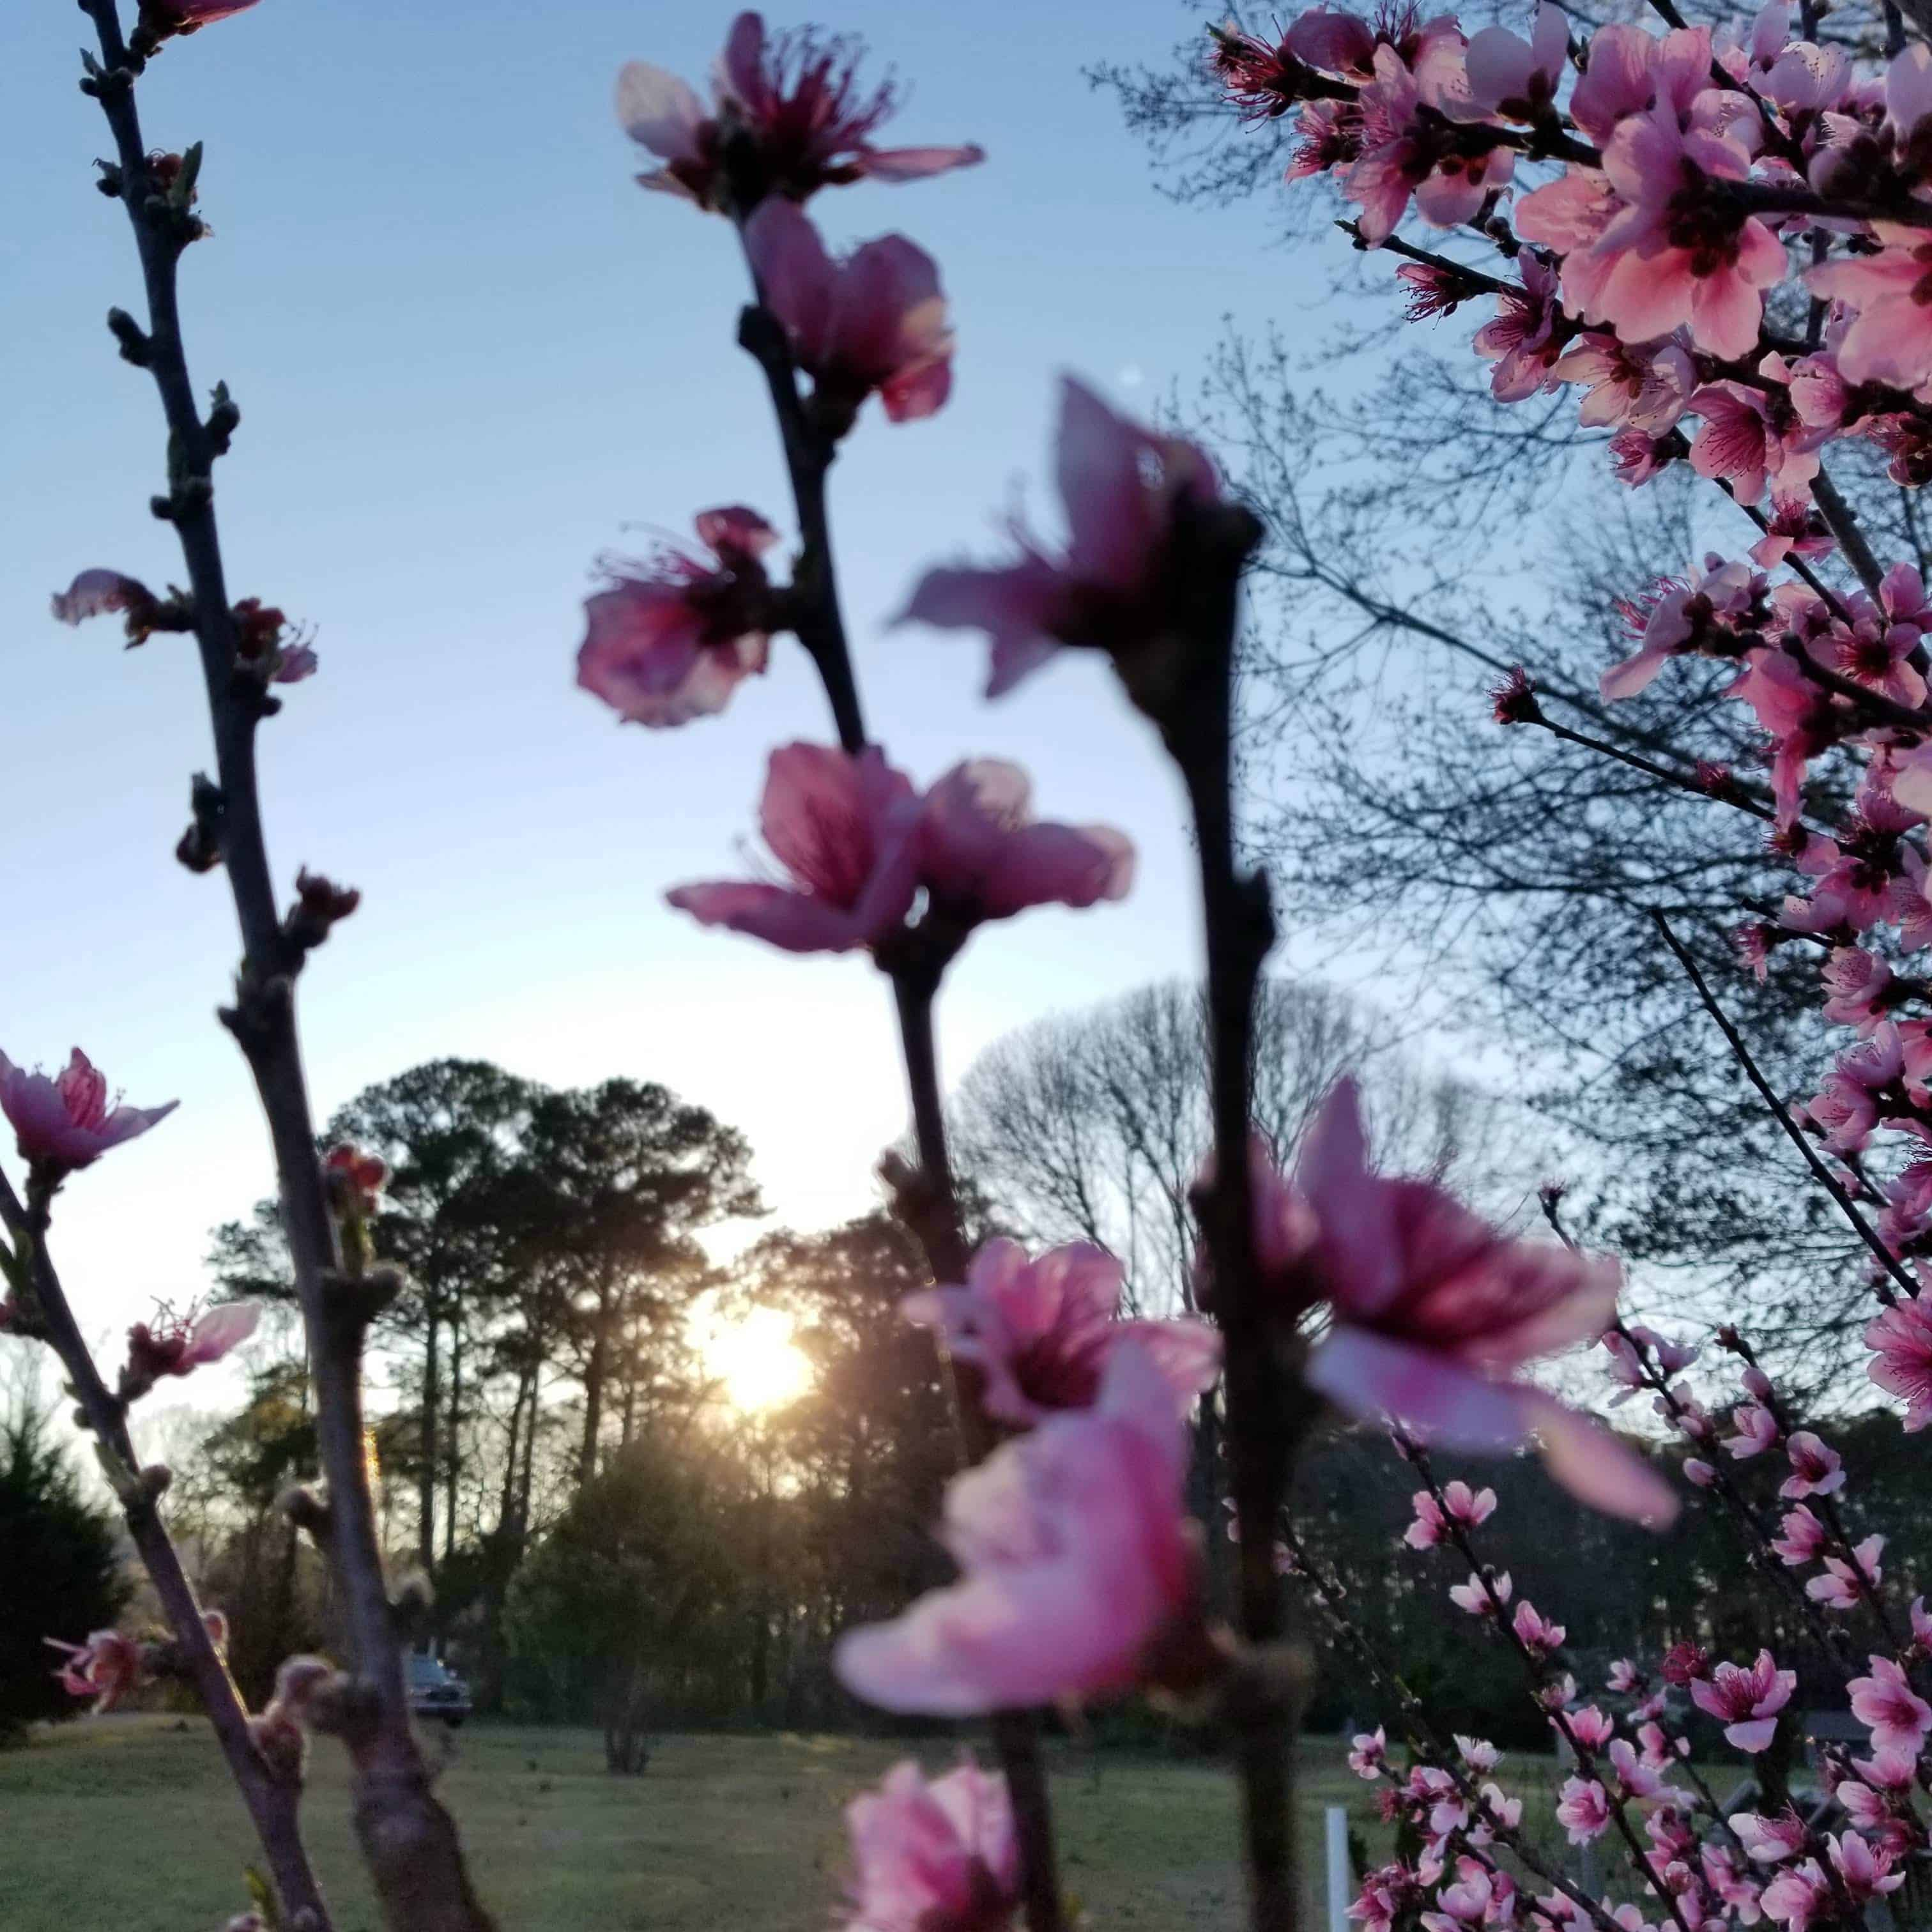 Sun setting in a blue sky through a shadow of trees and pink peach blossoms